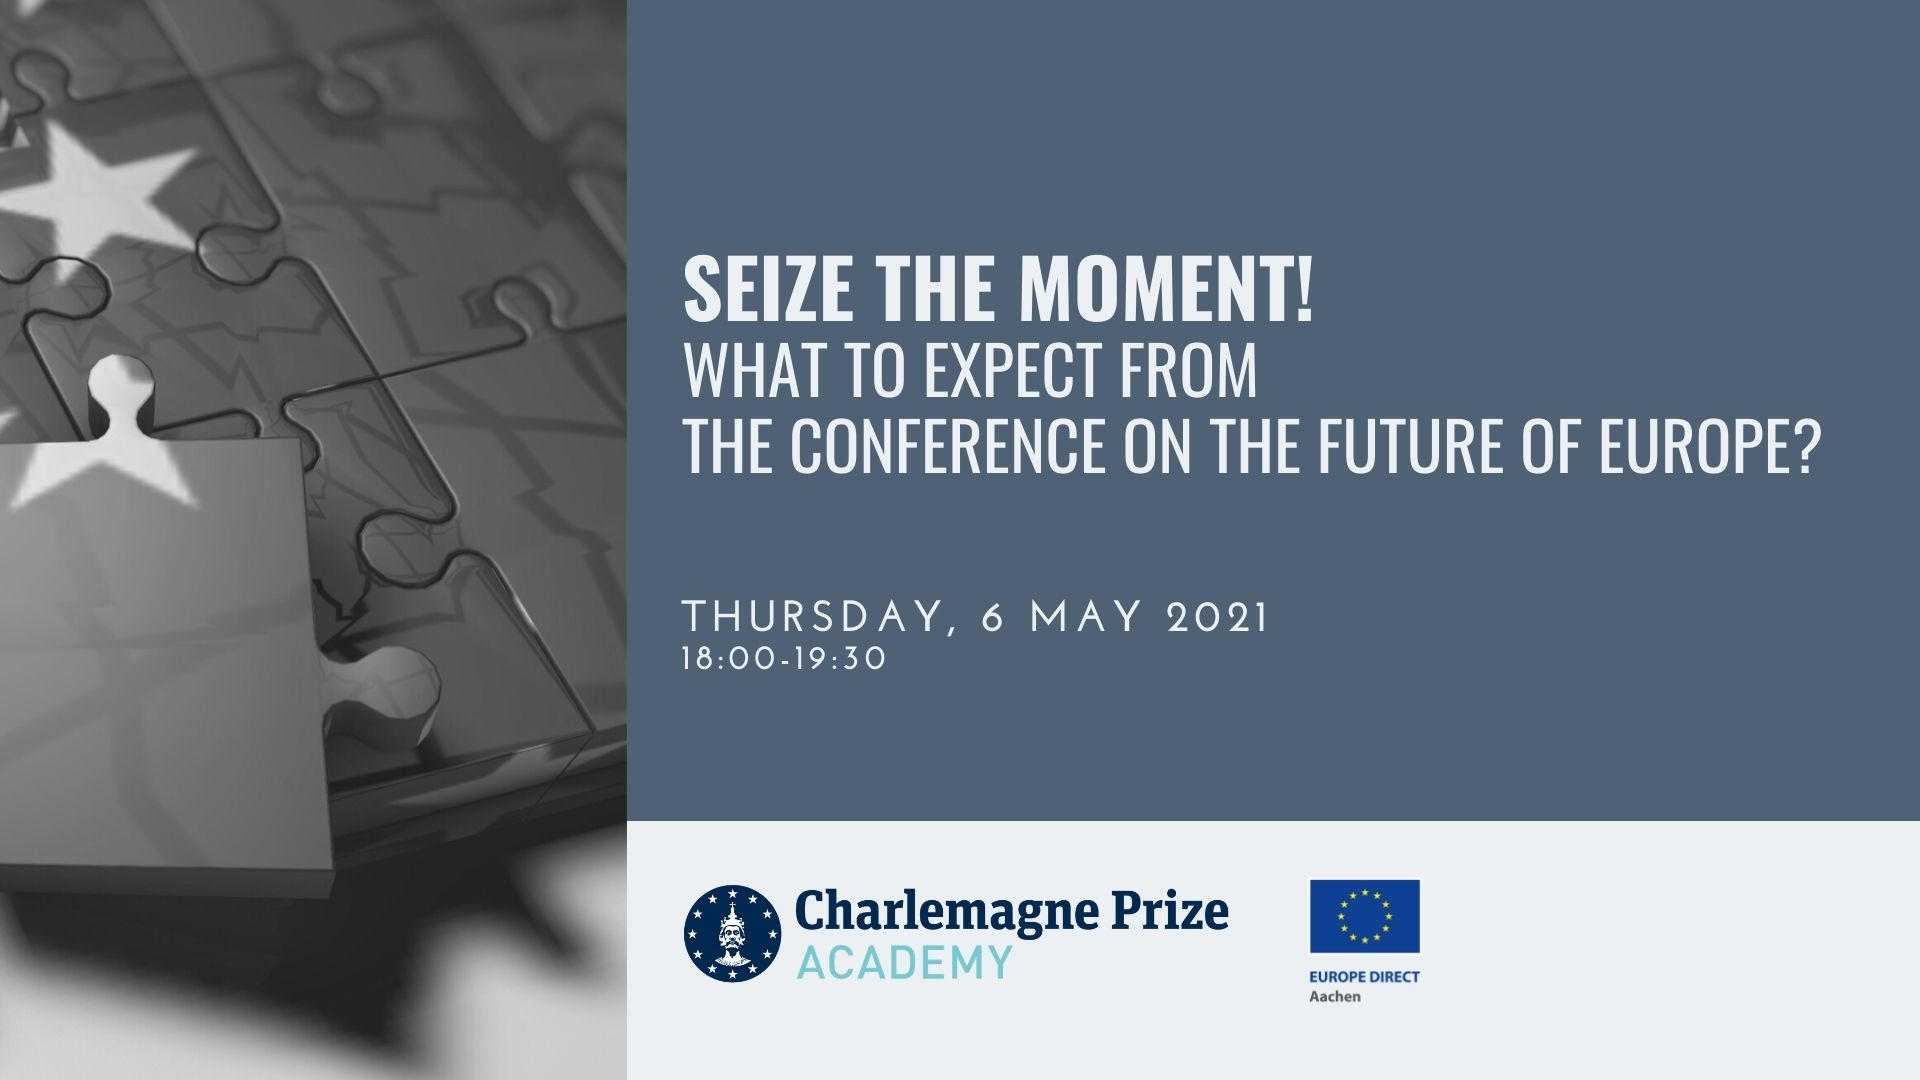 Seize the Moment - What to expect from the Conference on the Future of Europe